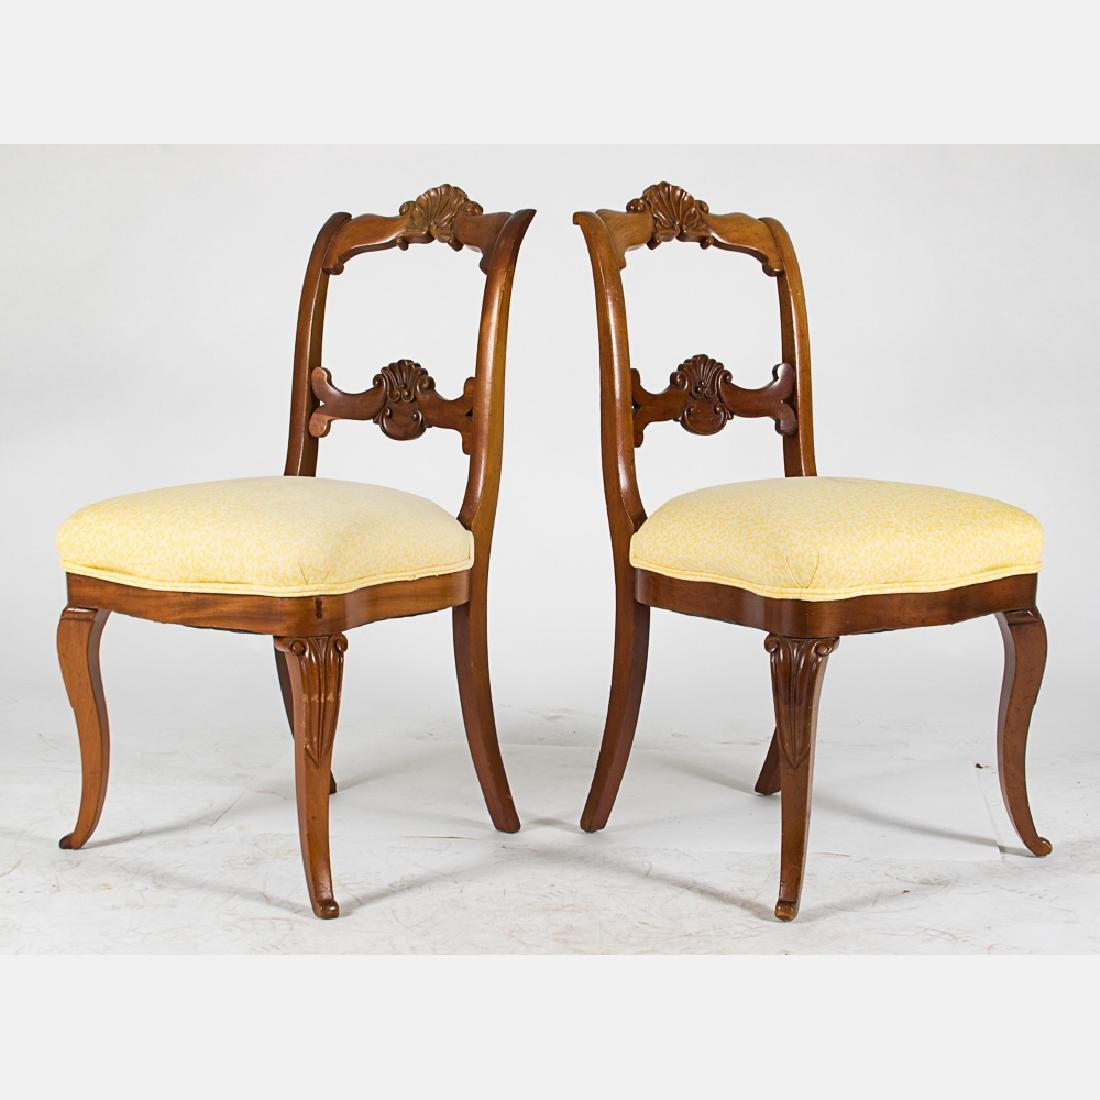 A Pair of Victorian Carved Mahogany Side Chairs with